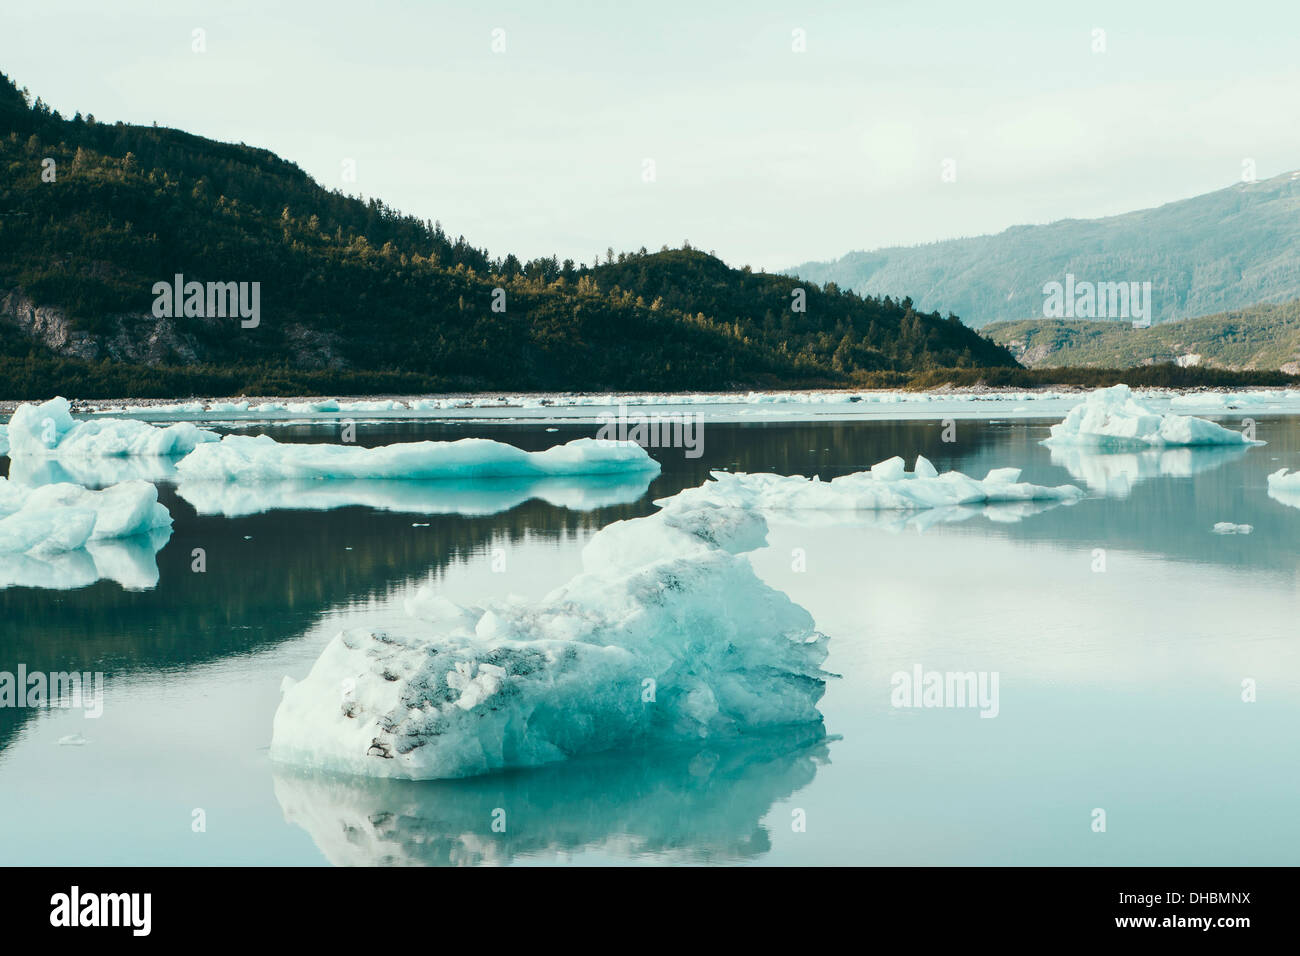 Icebergs floating off the shore at the end of the McBride Glacier, off Alaska. Stock Photo